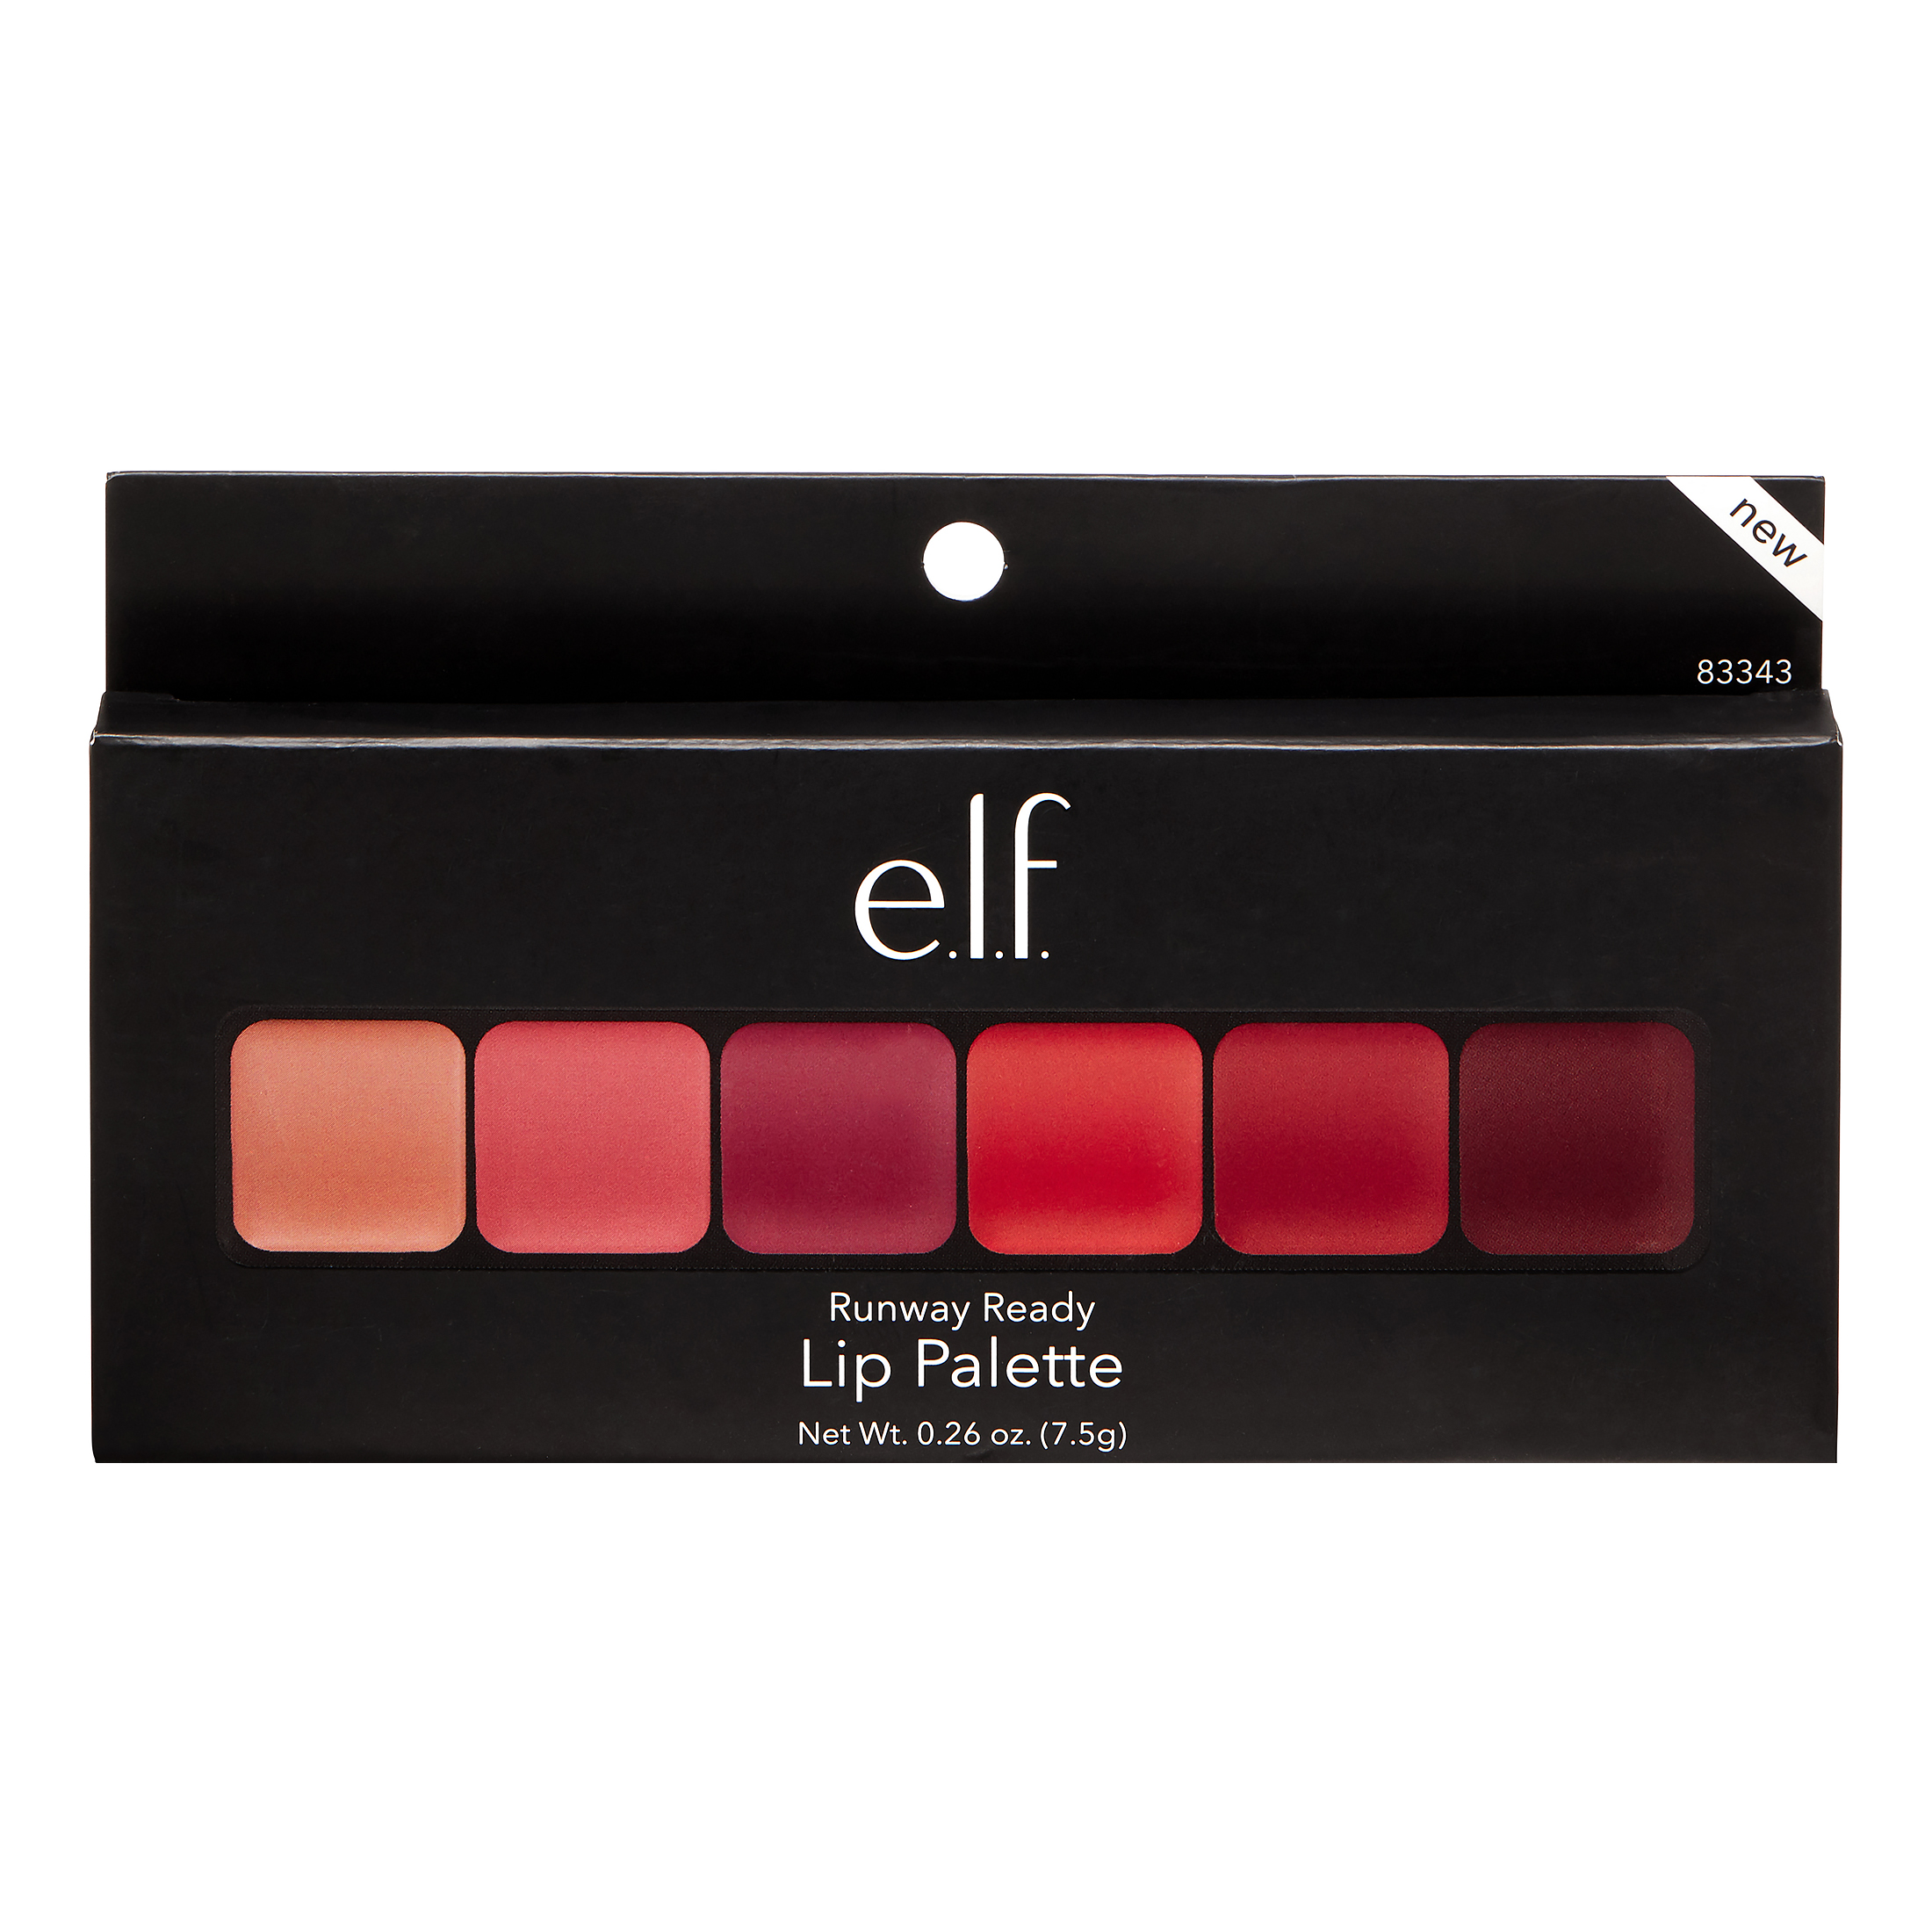 e.l.f. Lip Palette Runway Ready, 0.26 OZ